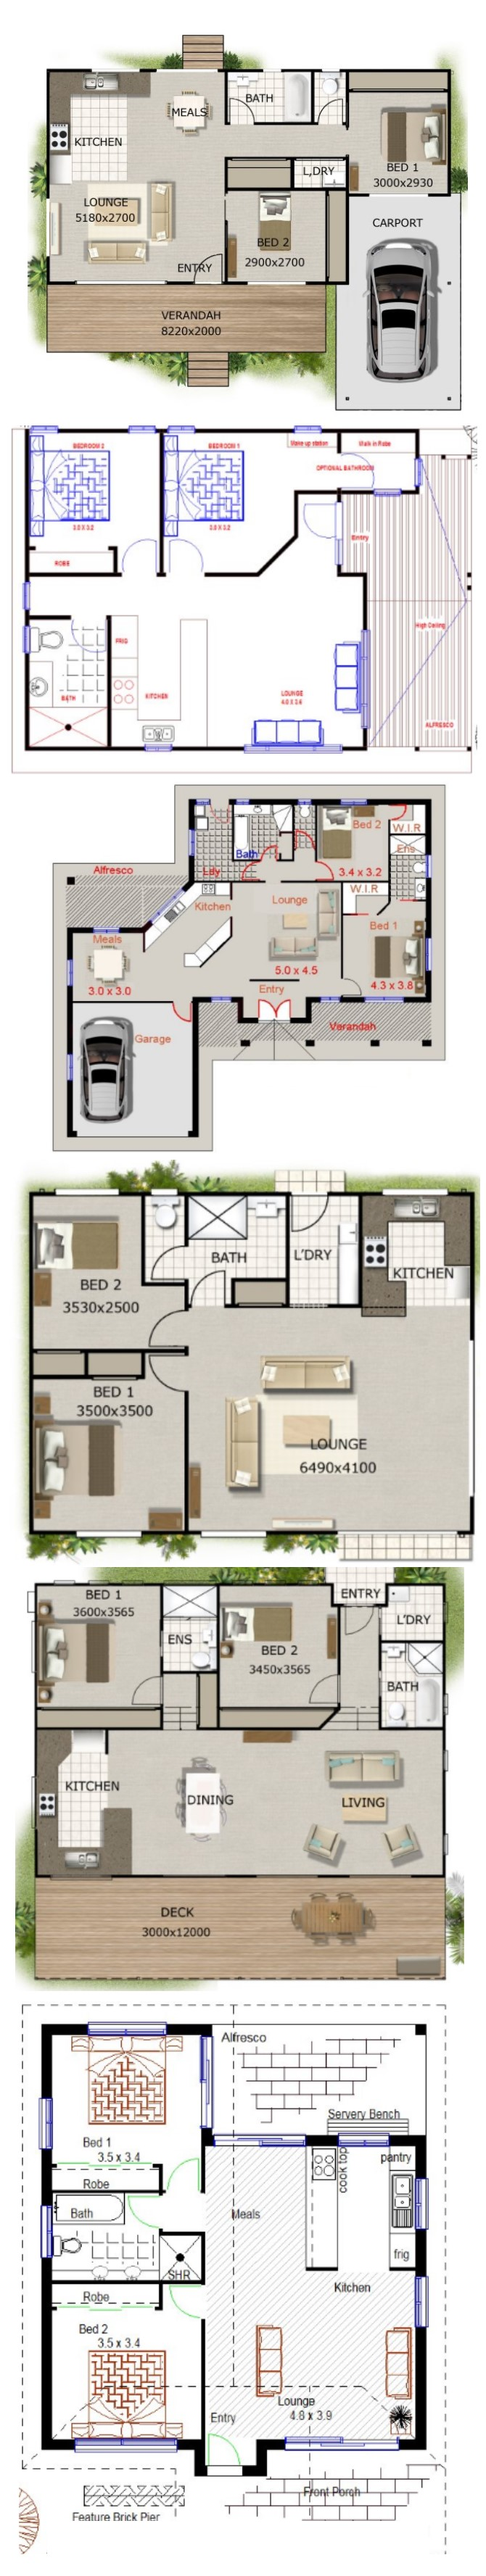 Small House Plans For Kit Homes